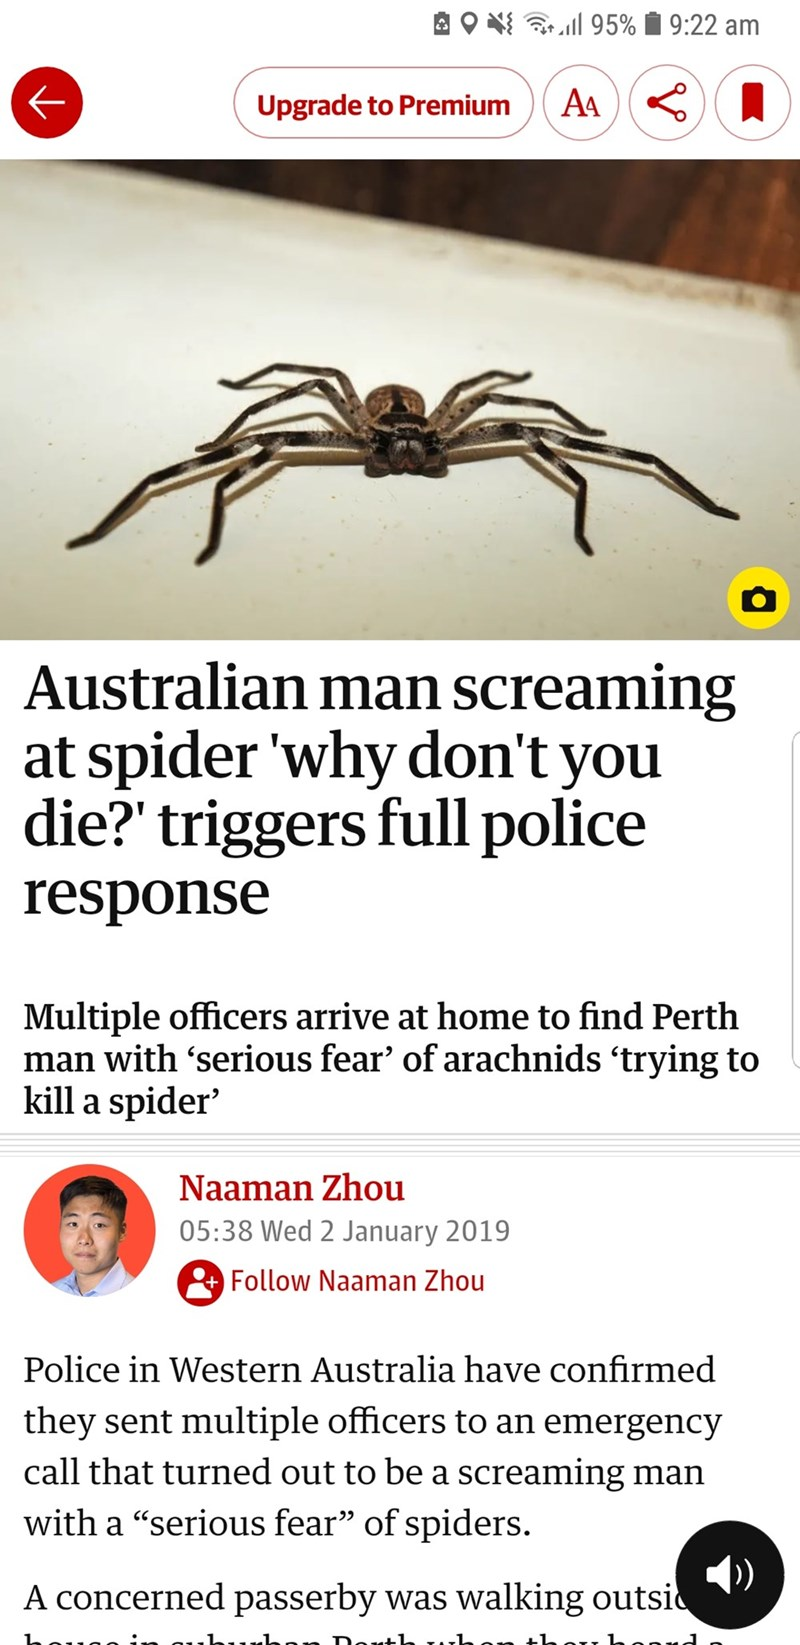 spiders in australia are something you call the police for